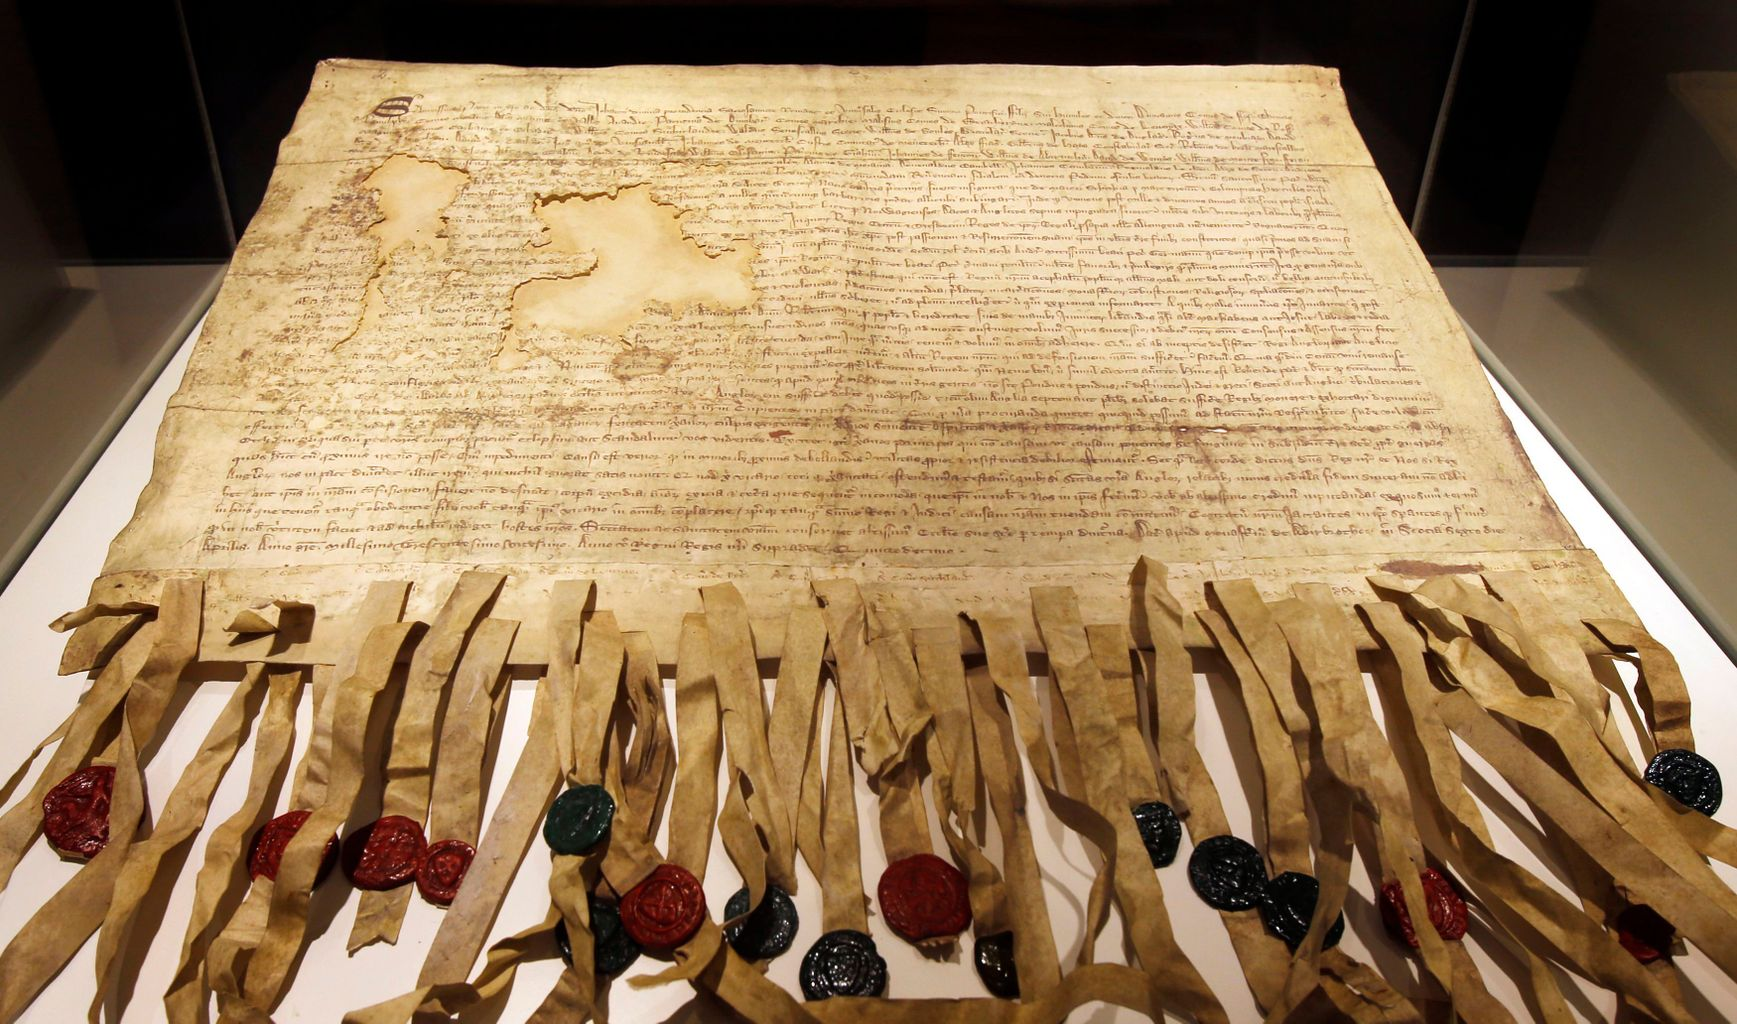 Declaration of Arbroath 700th anniversary